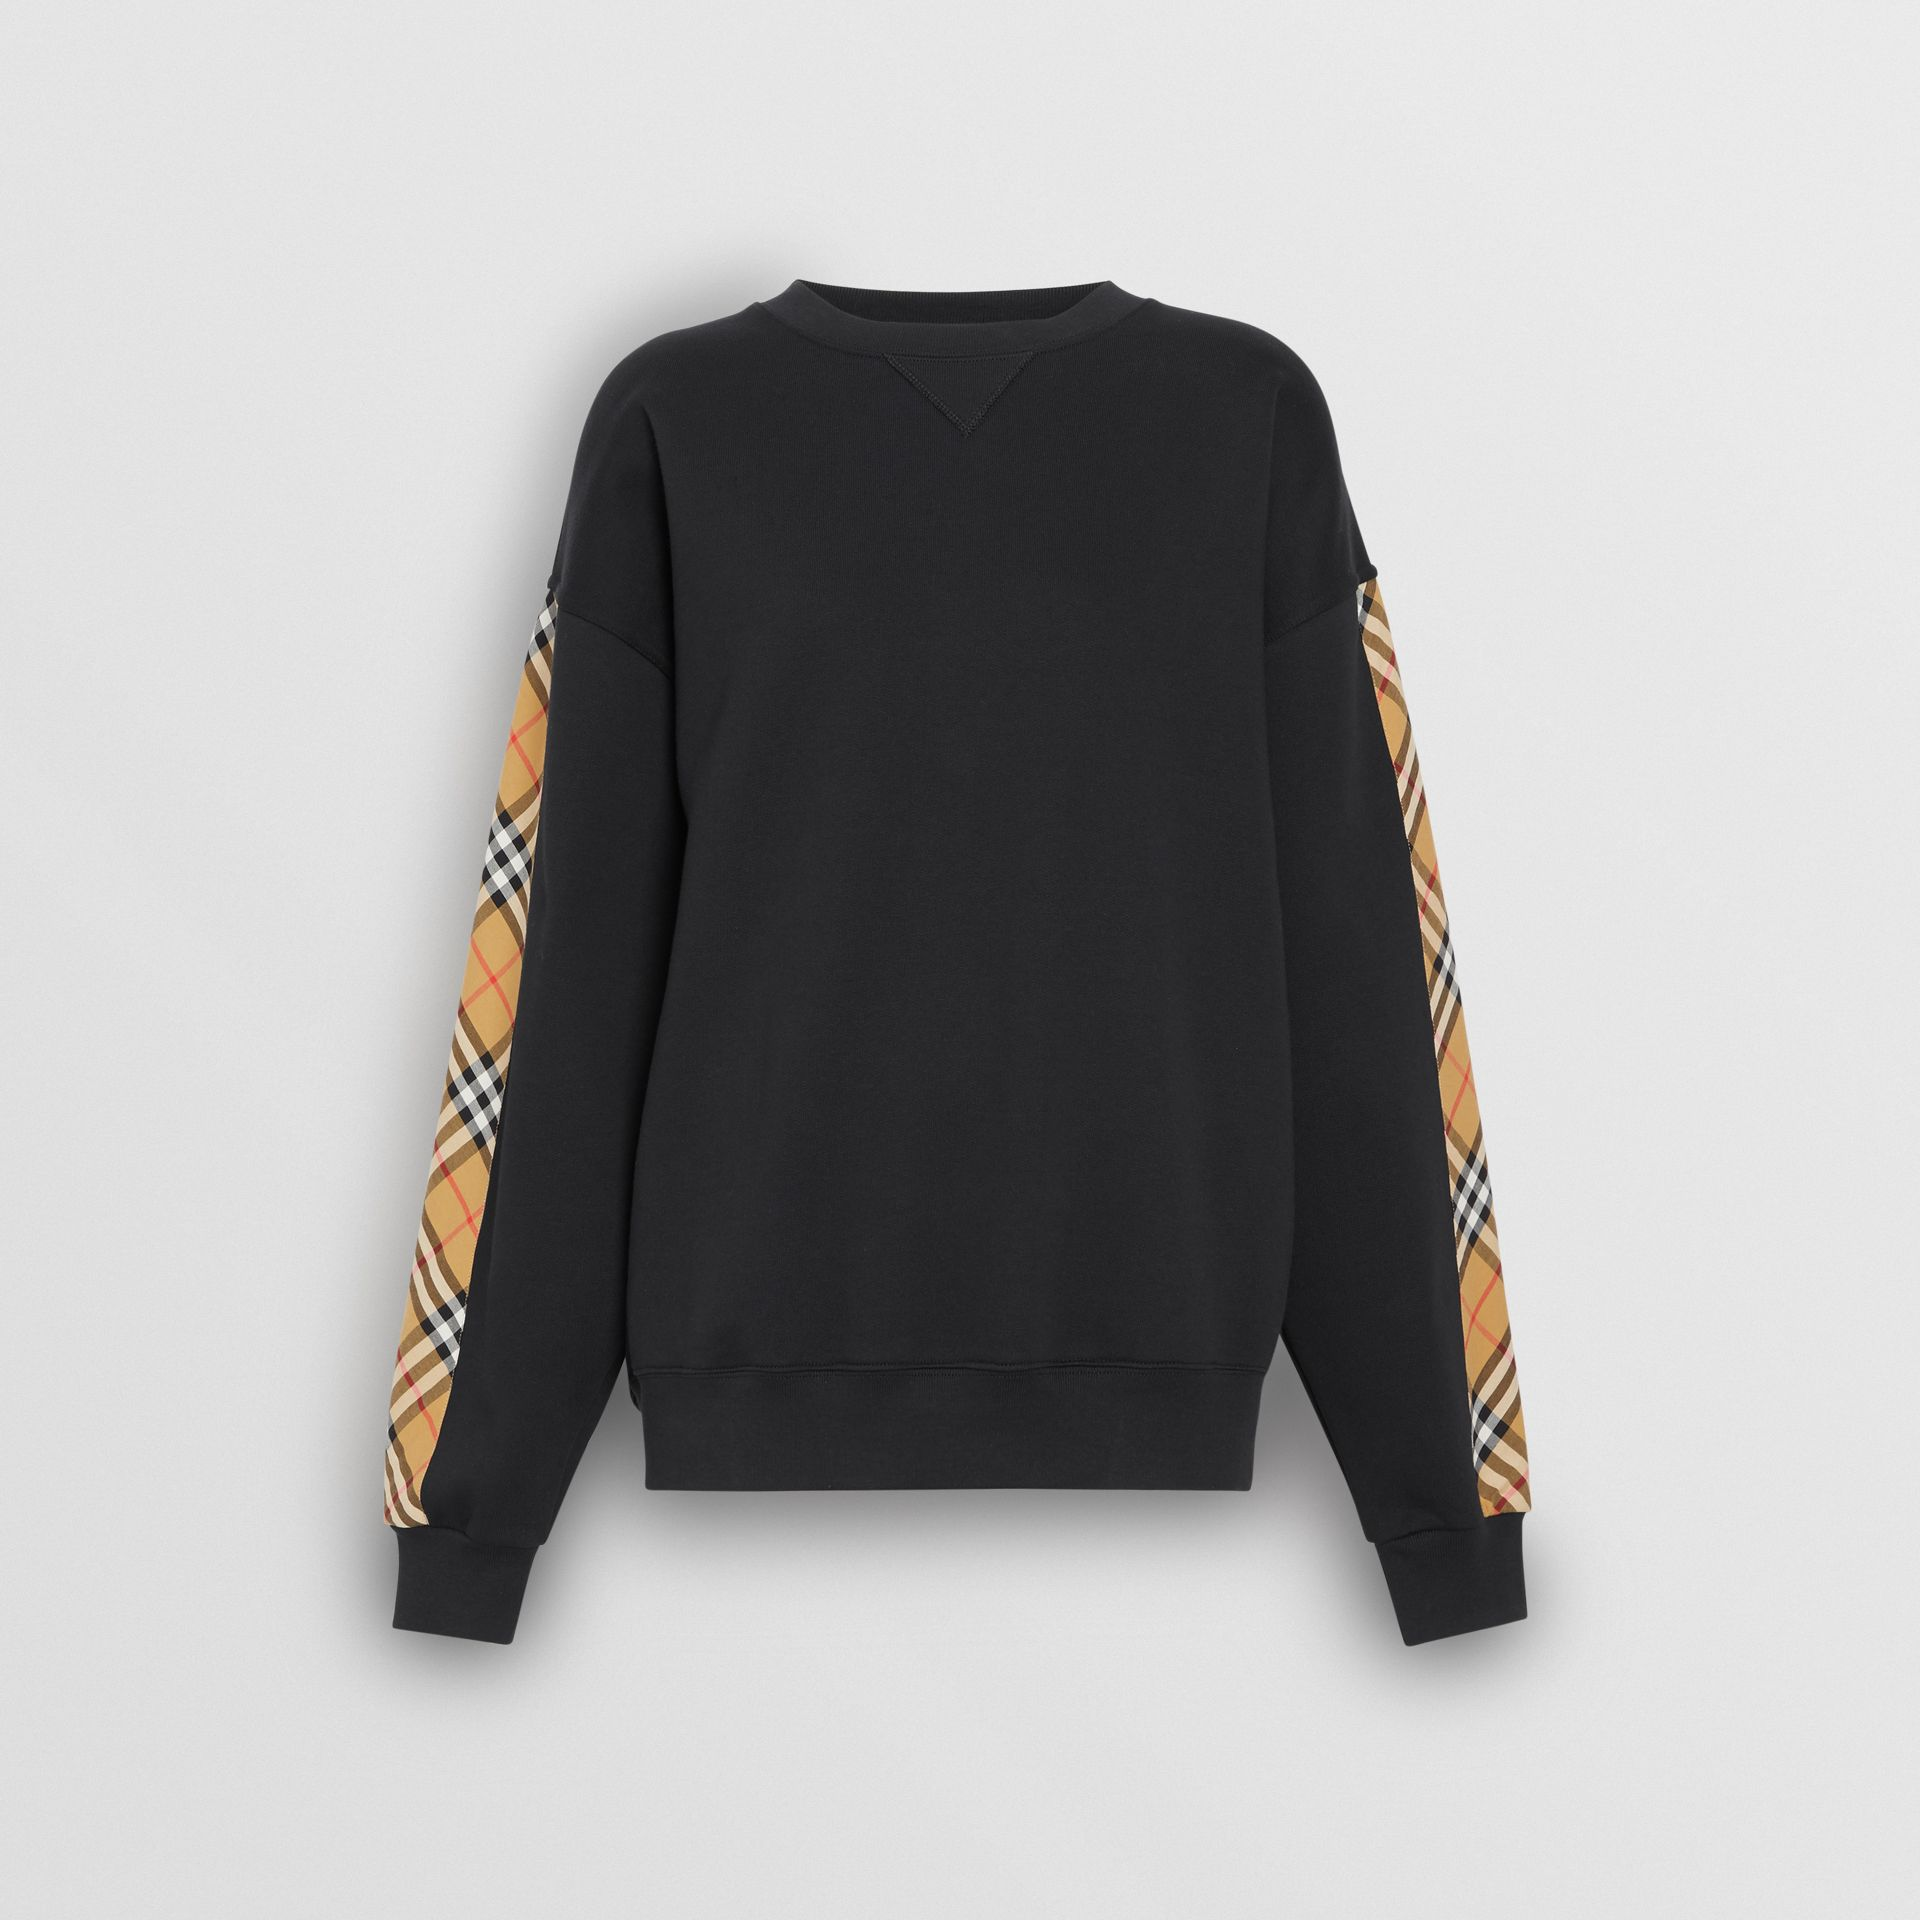 Vintage Check Detail Cotton Blend Sweatshirt in Black - Women | Burberry Hong Kong S.A.R - gallery image 3